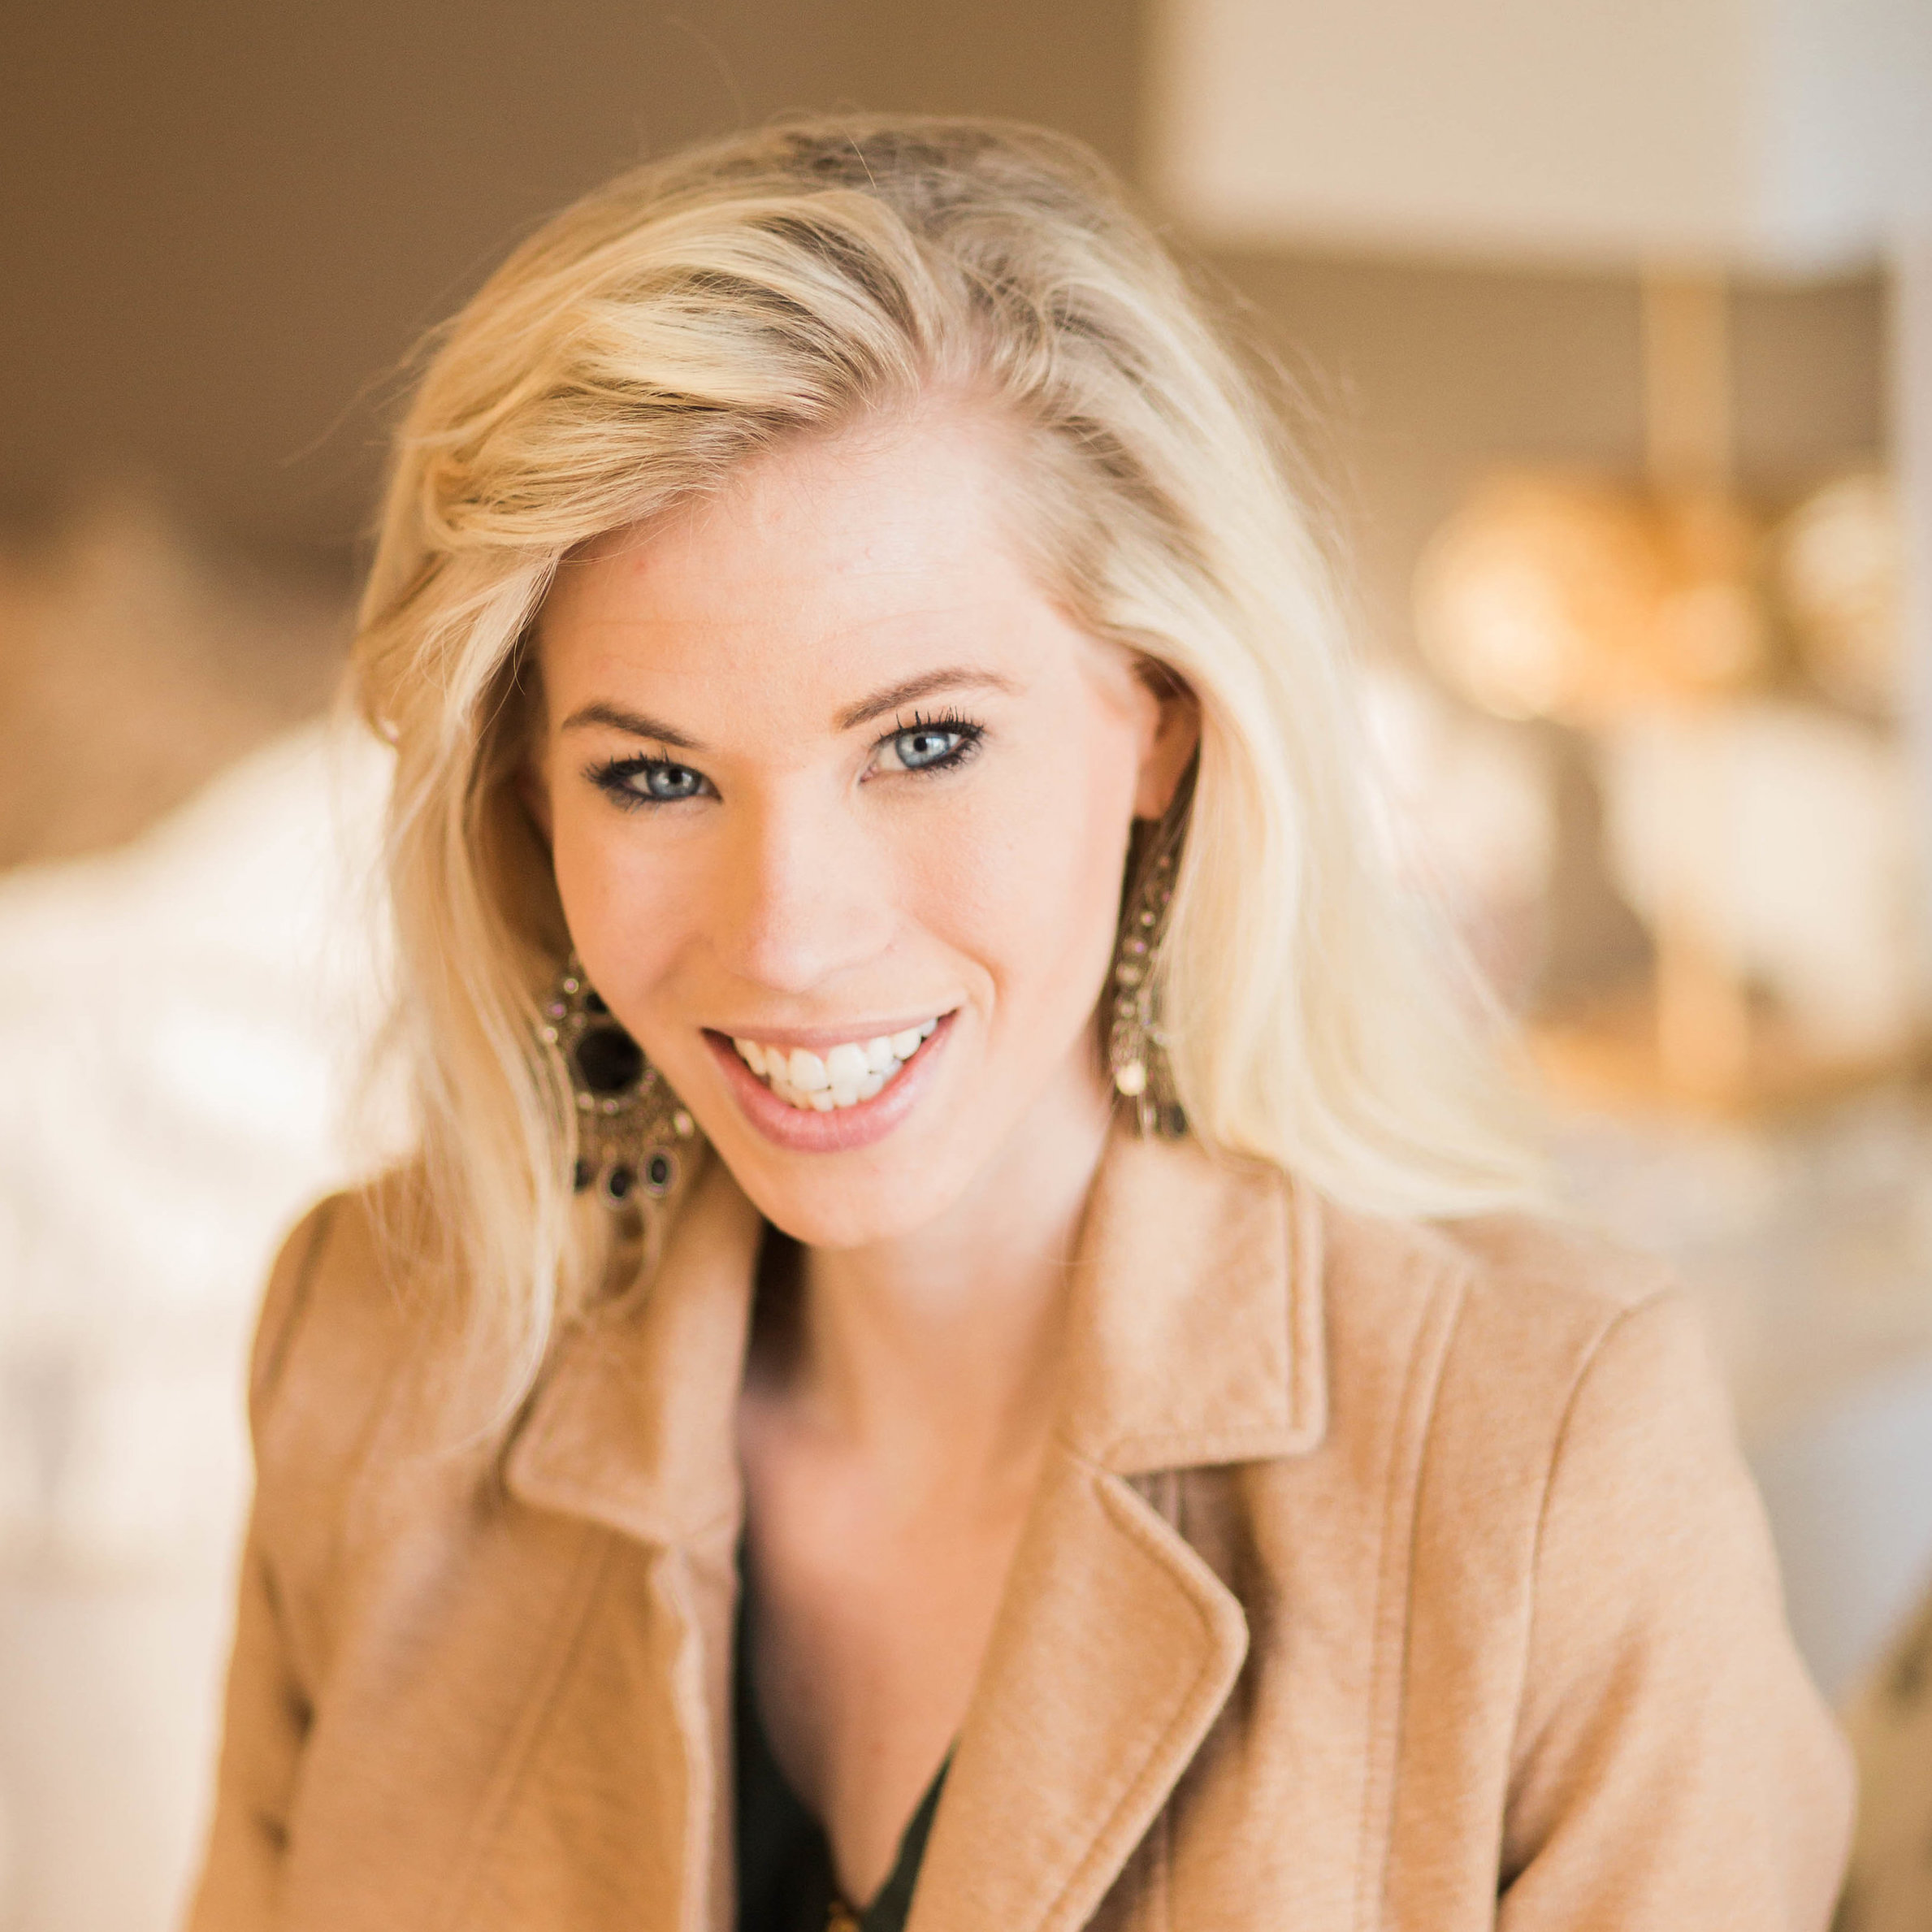 Nicole smiles in front of a blurred background. She has long blonde hair, light-toned skin, and a camel colored jacket.